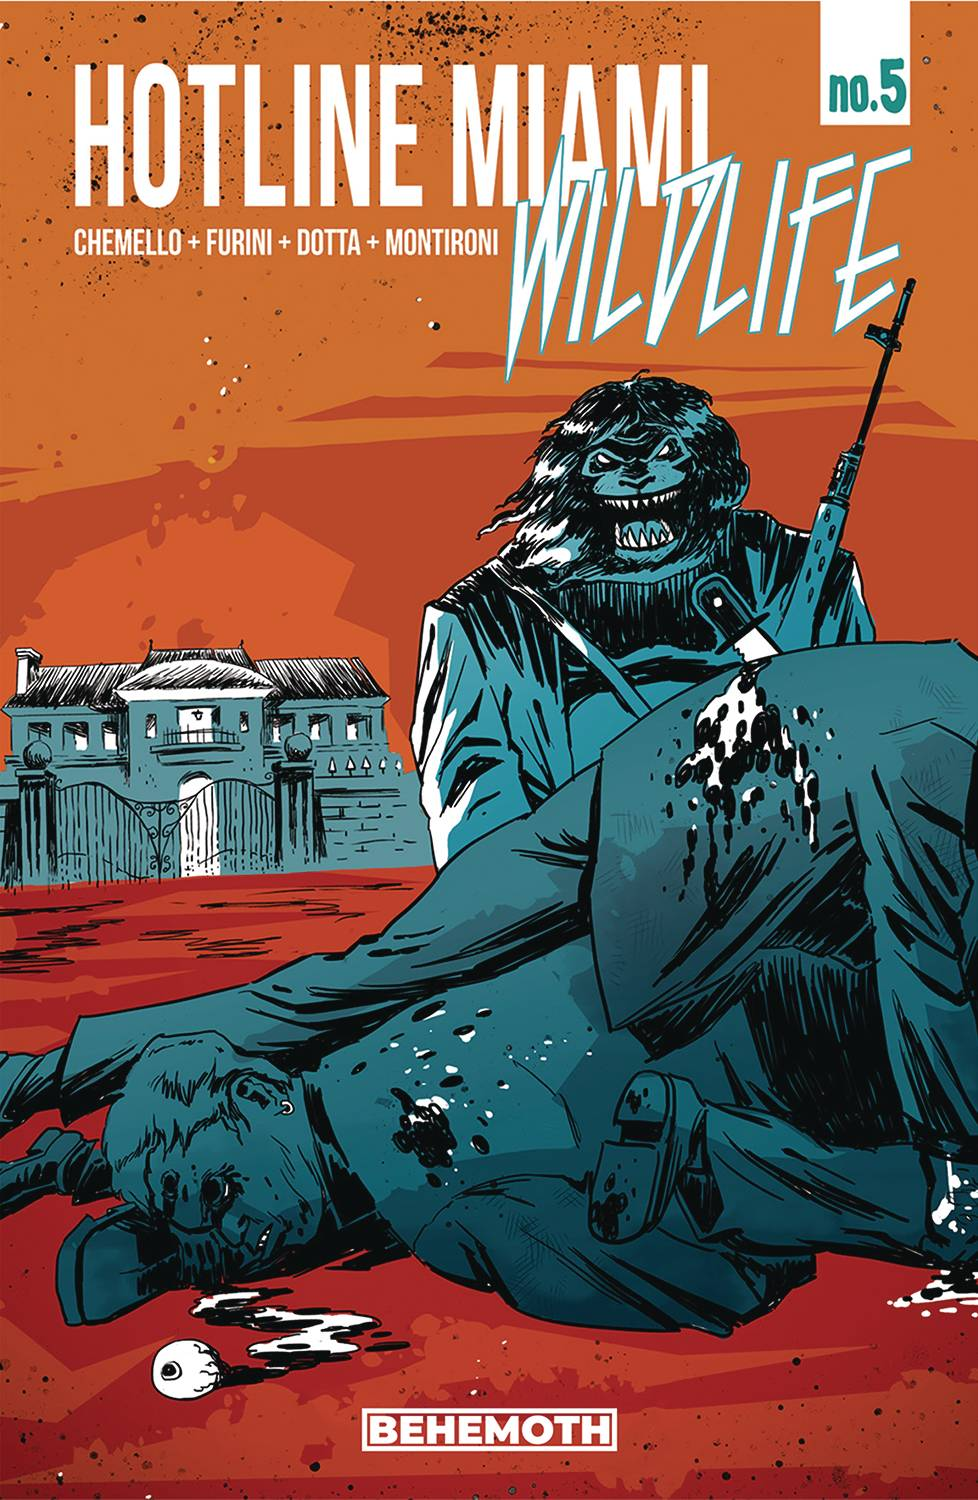 HOTLINE MIAMI WILDLIFE #5 (OF 8)  PRE-ORDER